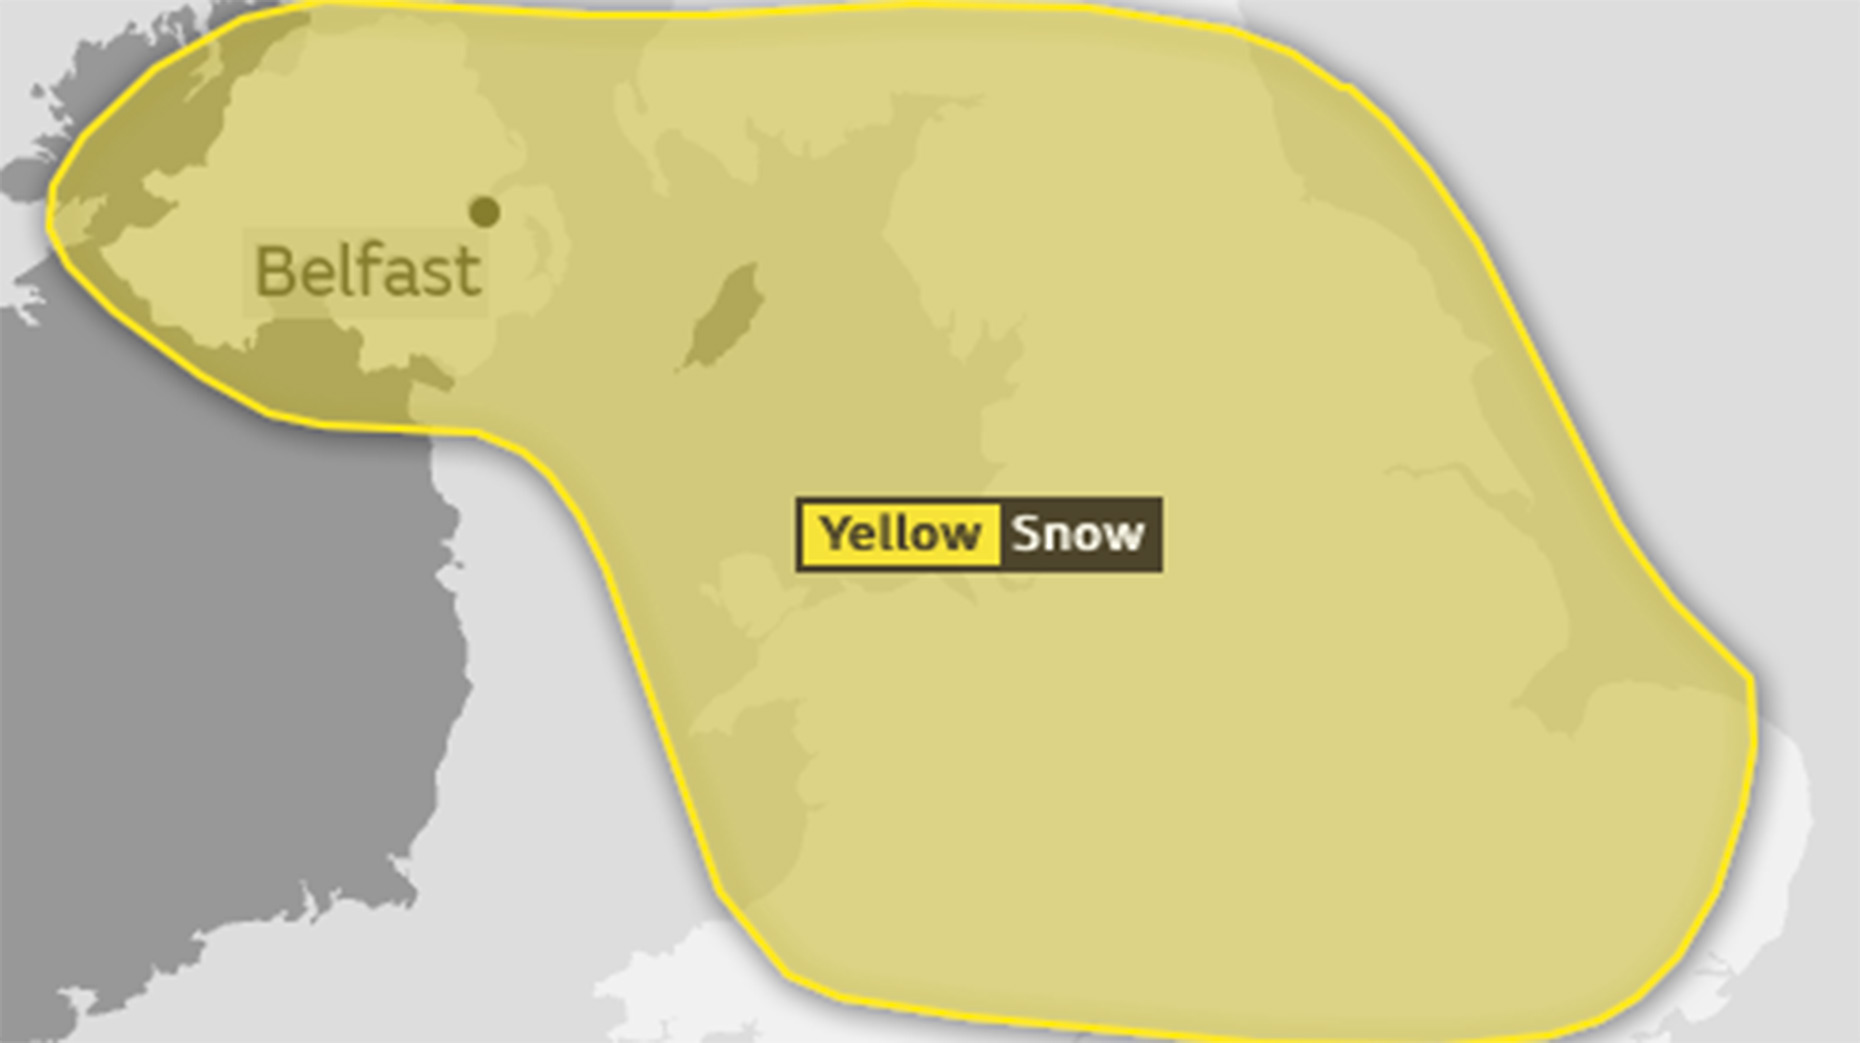 Snow-Ice Warning Issued For Ireland